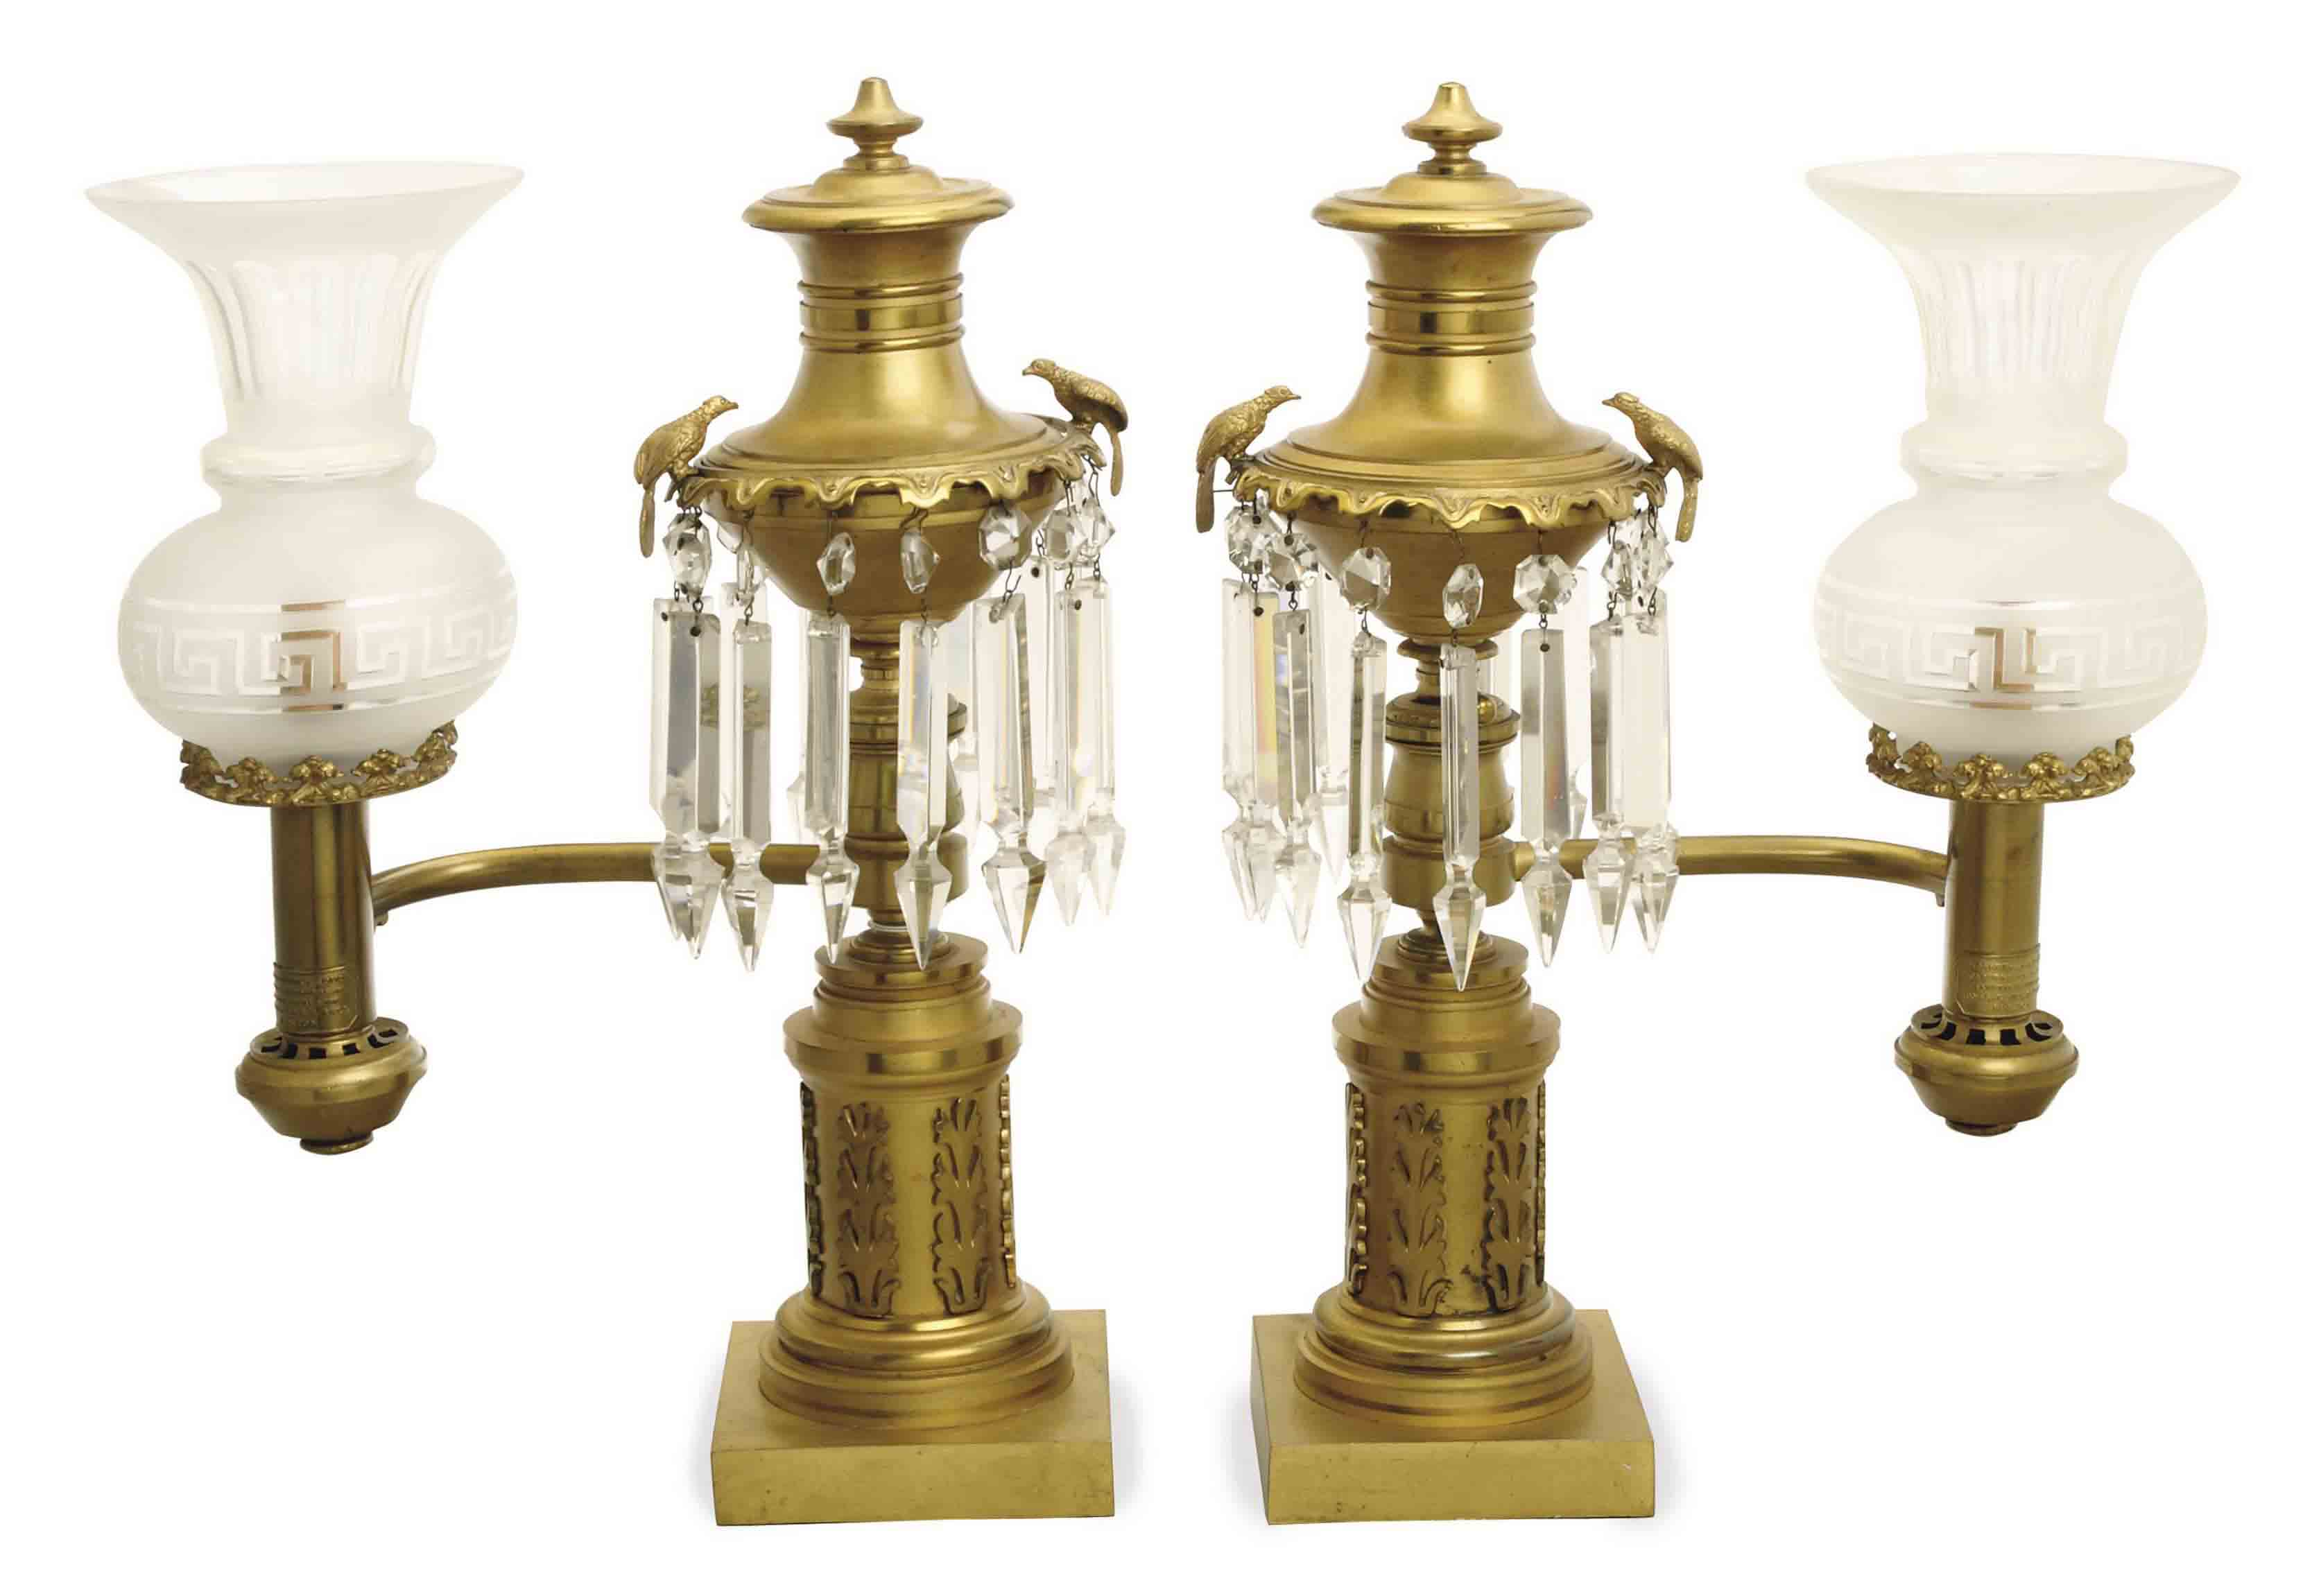 A PAIR OF AMERICAN CLASSICAL GILT BRONZE AND CUT GLASS ARGAND LAMPS,